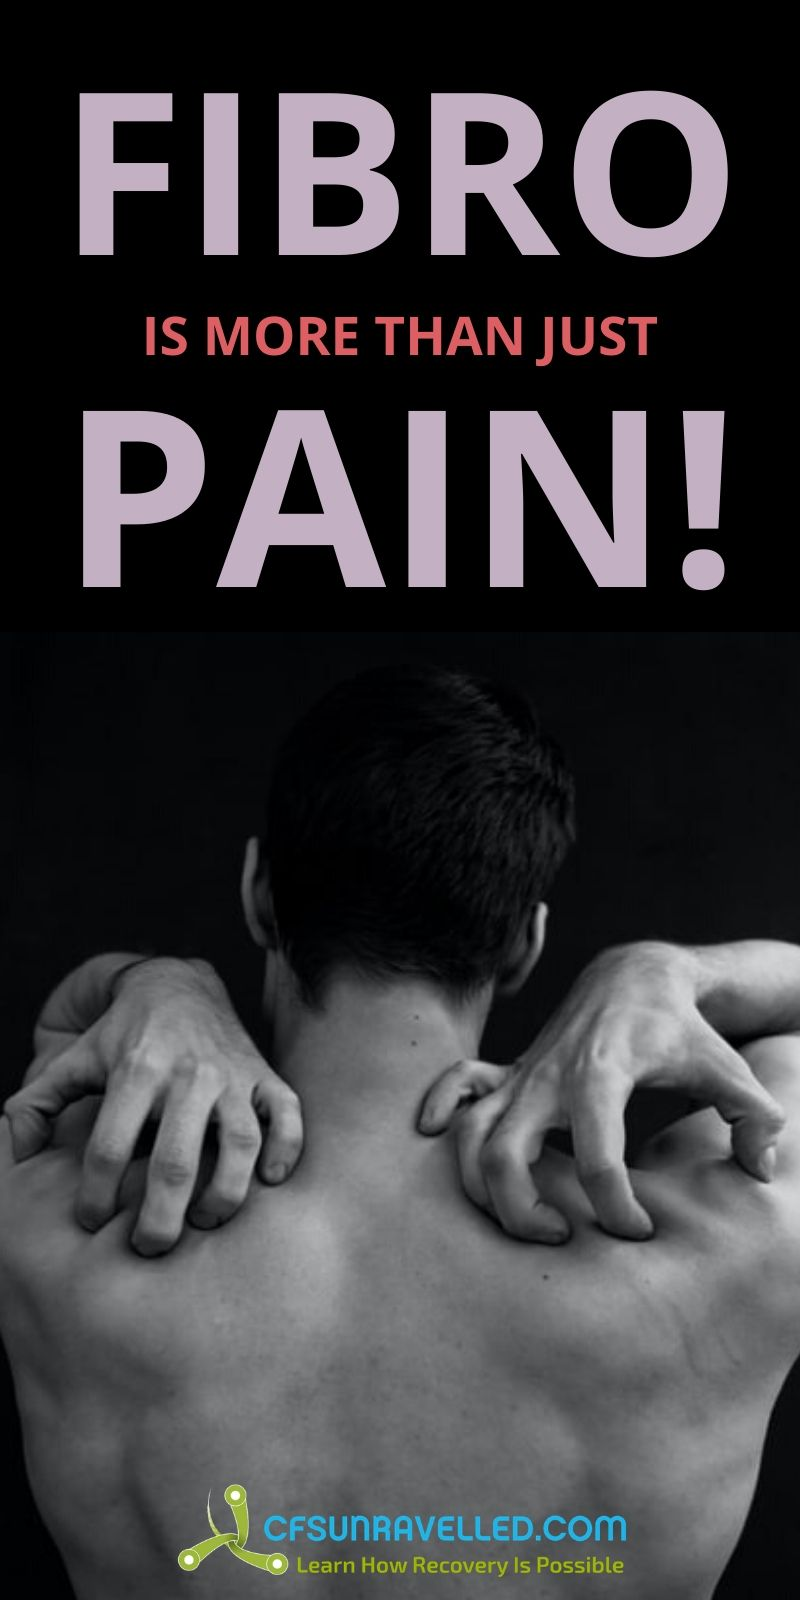 Man in pain with Fibromyalgia is more than just pain text on top